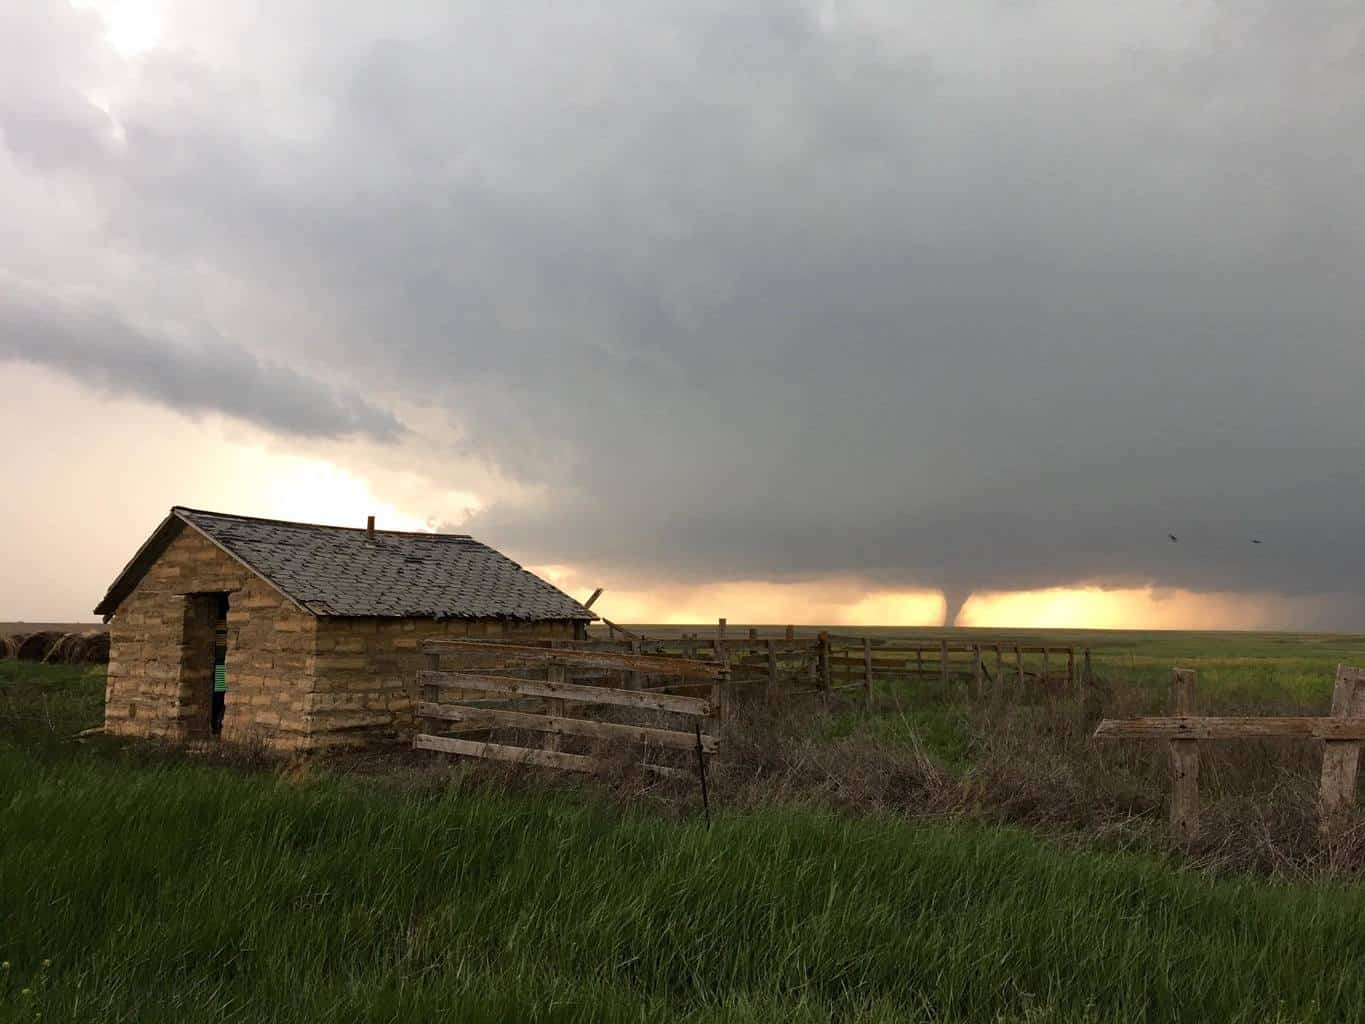 Tornado near Ness City, KS about 2 hours ago. Taken with iPhone